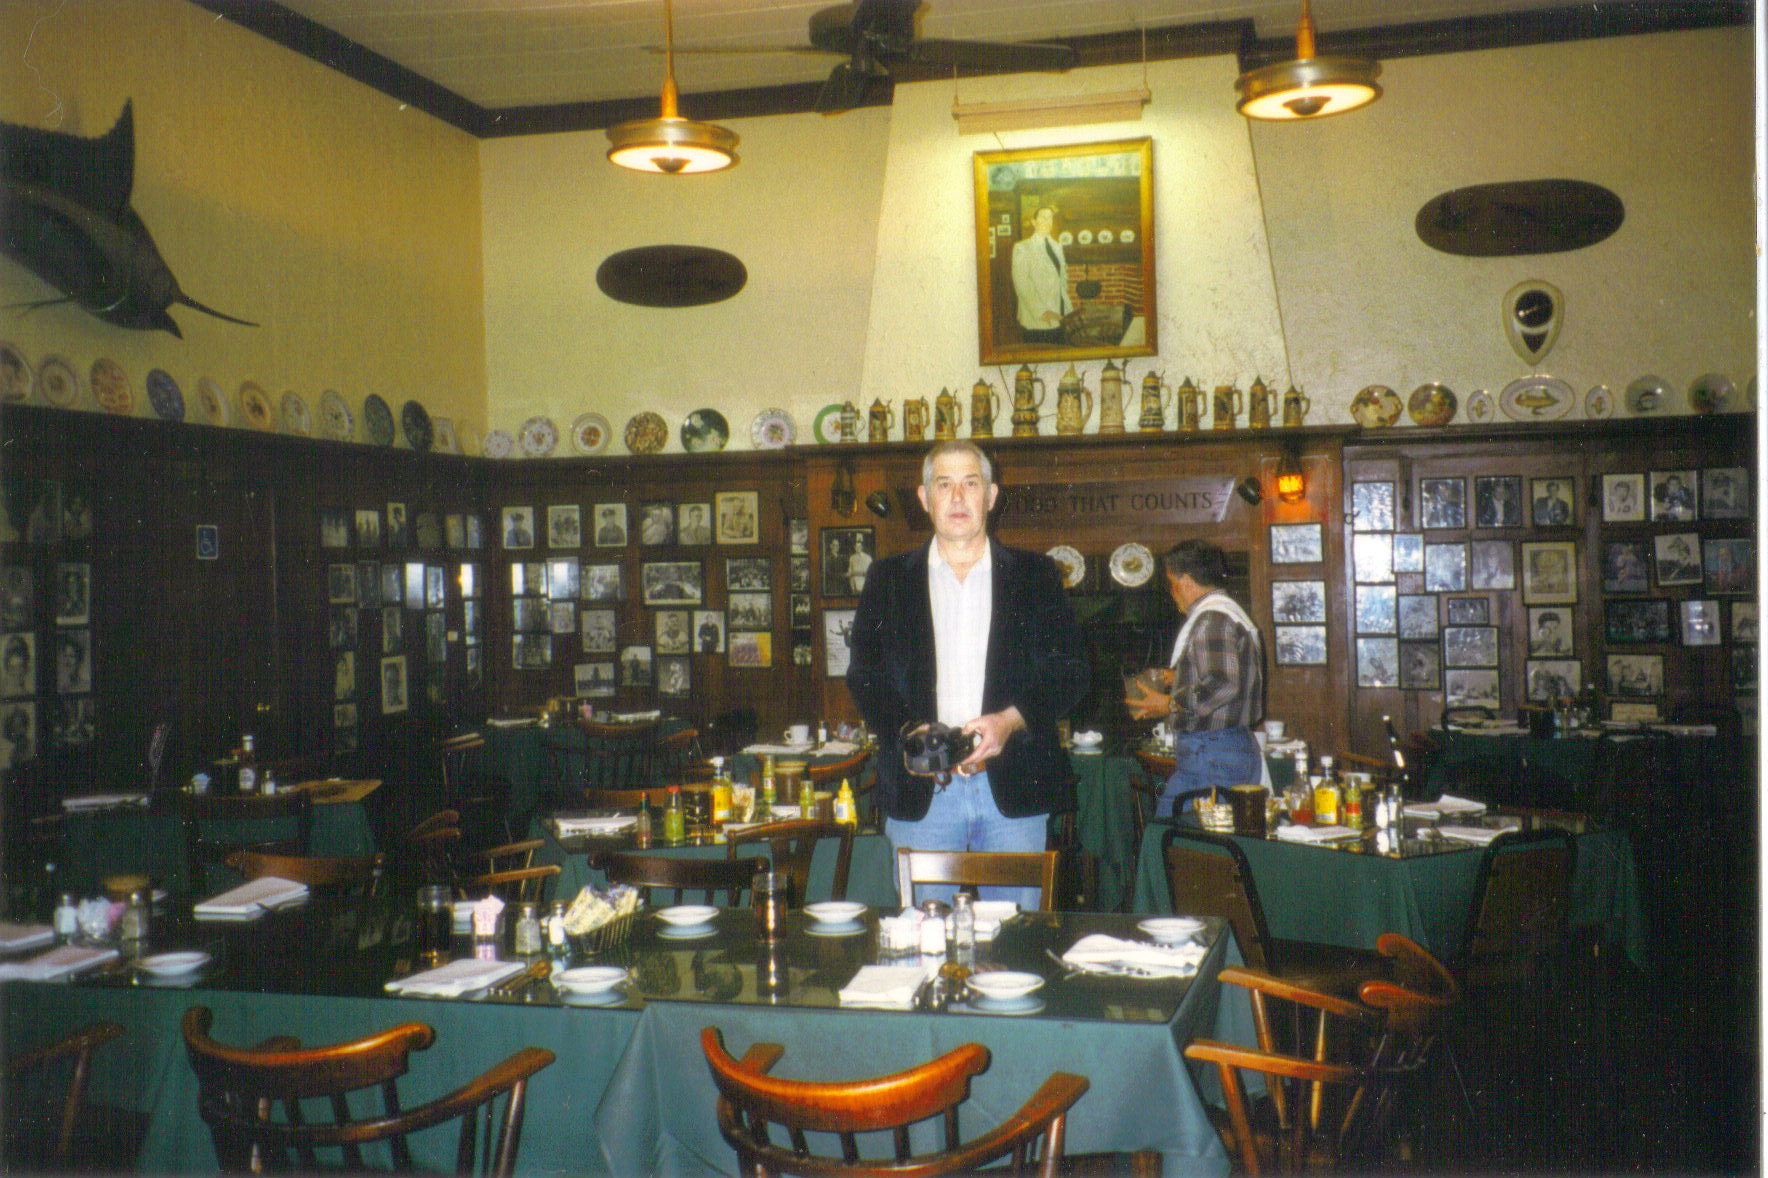 Inside Weidmann's - March 1996 - Thanks to Joe B. Stewart!